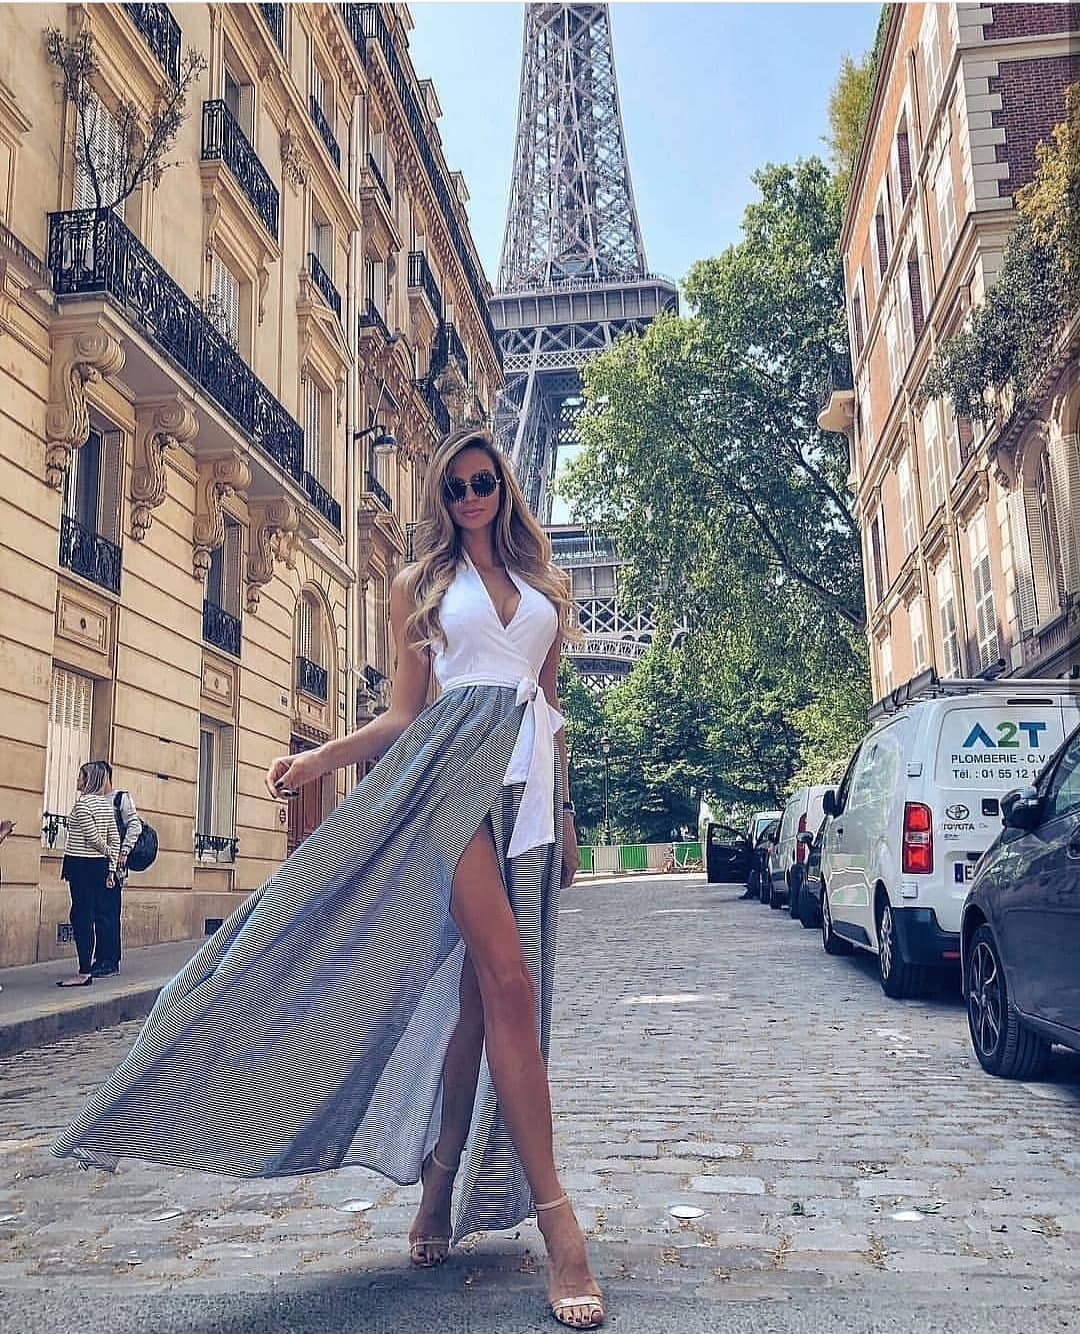 Two Piece Dress For Paris Summer 2020